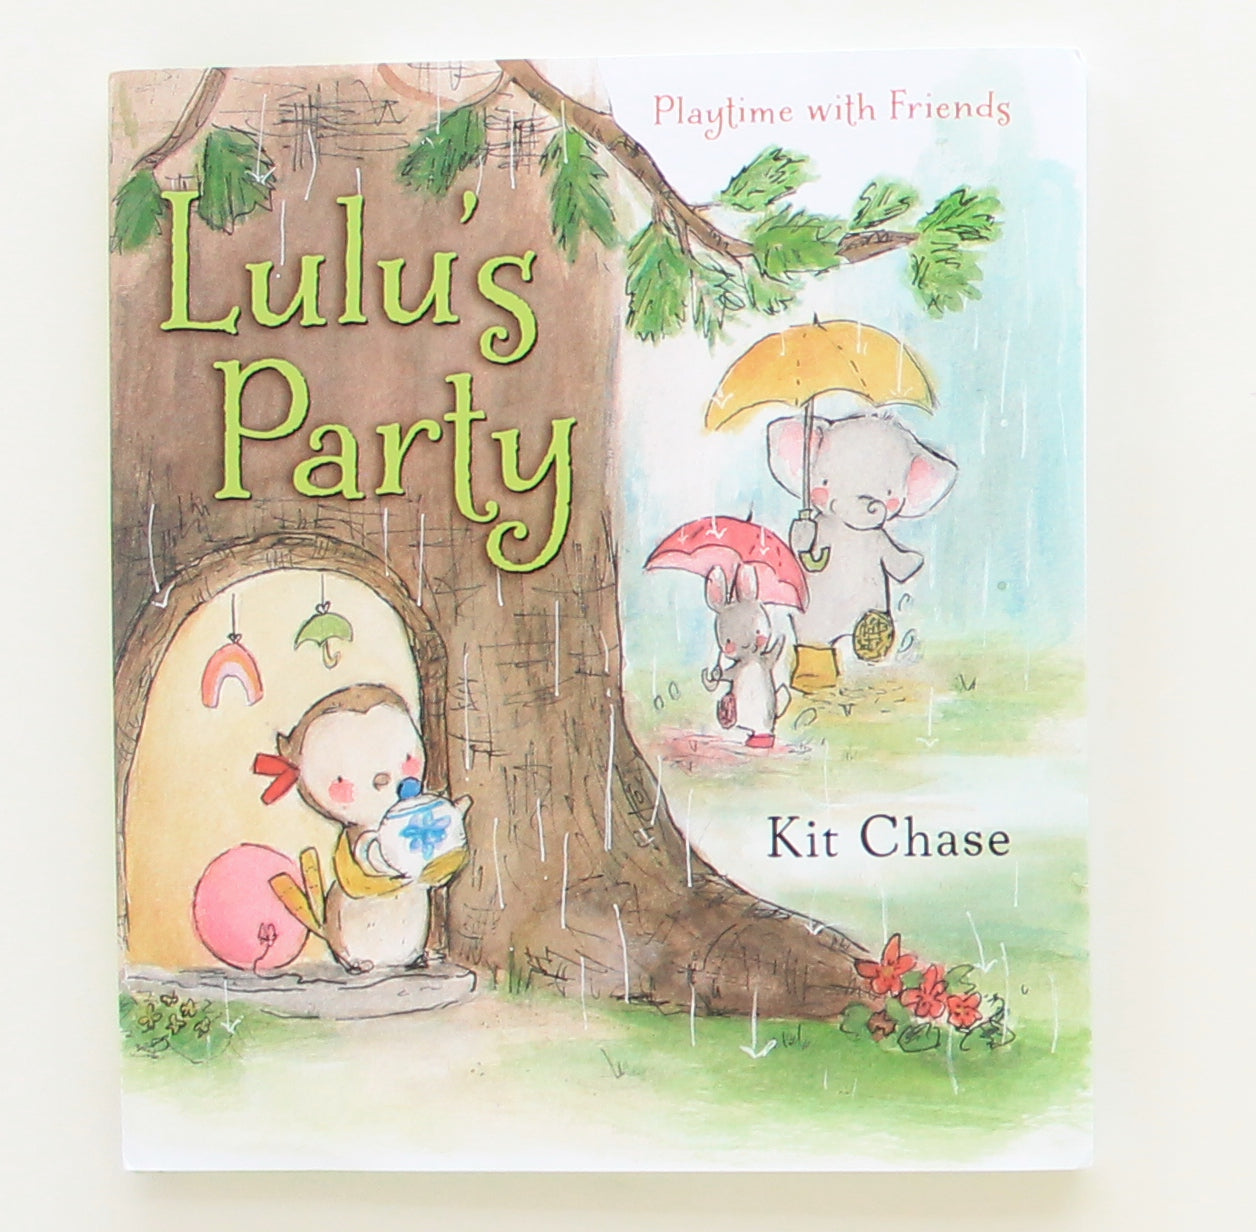 Lulu's Party by Kit Chase